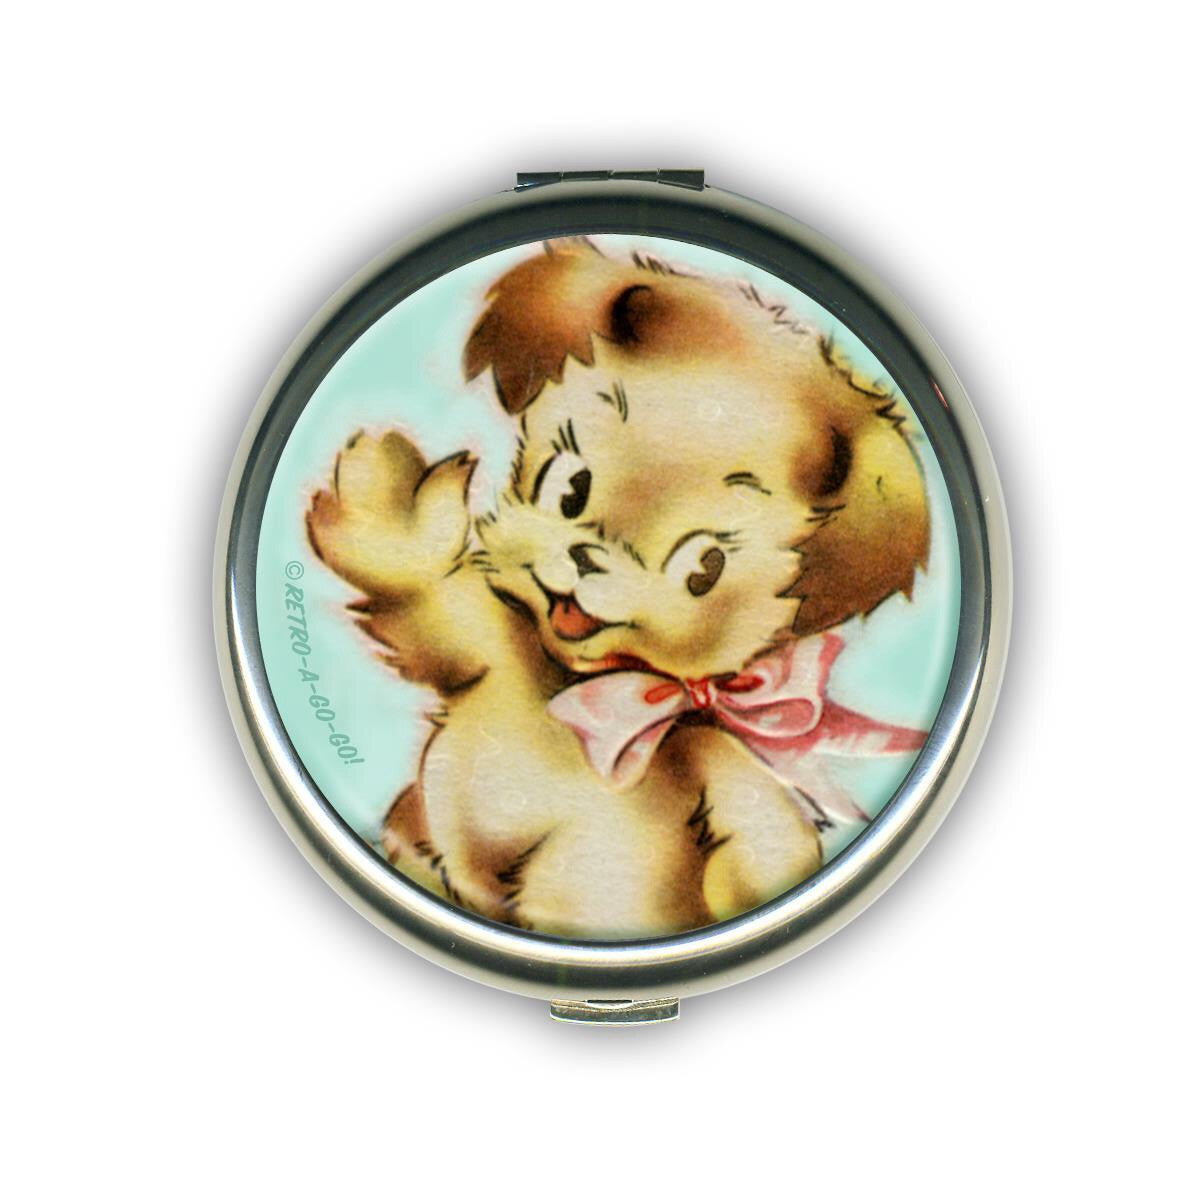 ❤️ BEARSY WEARSY mirror compact